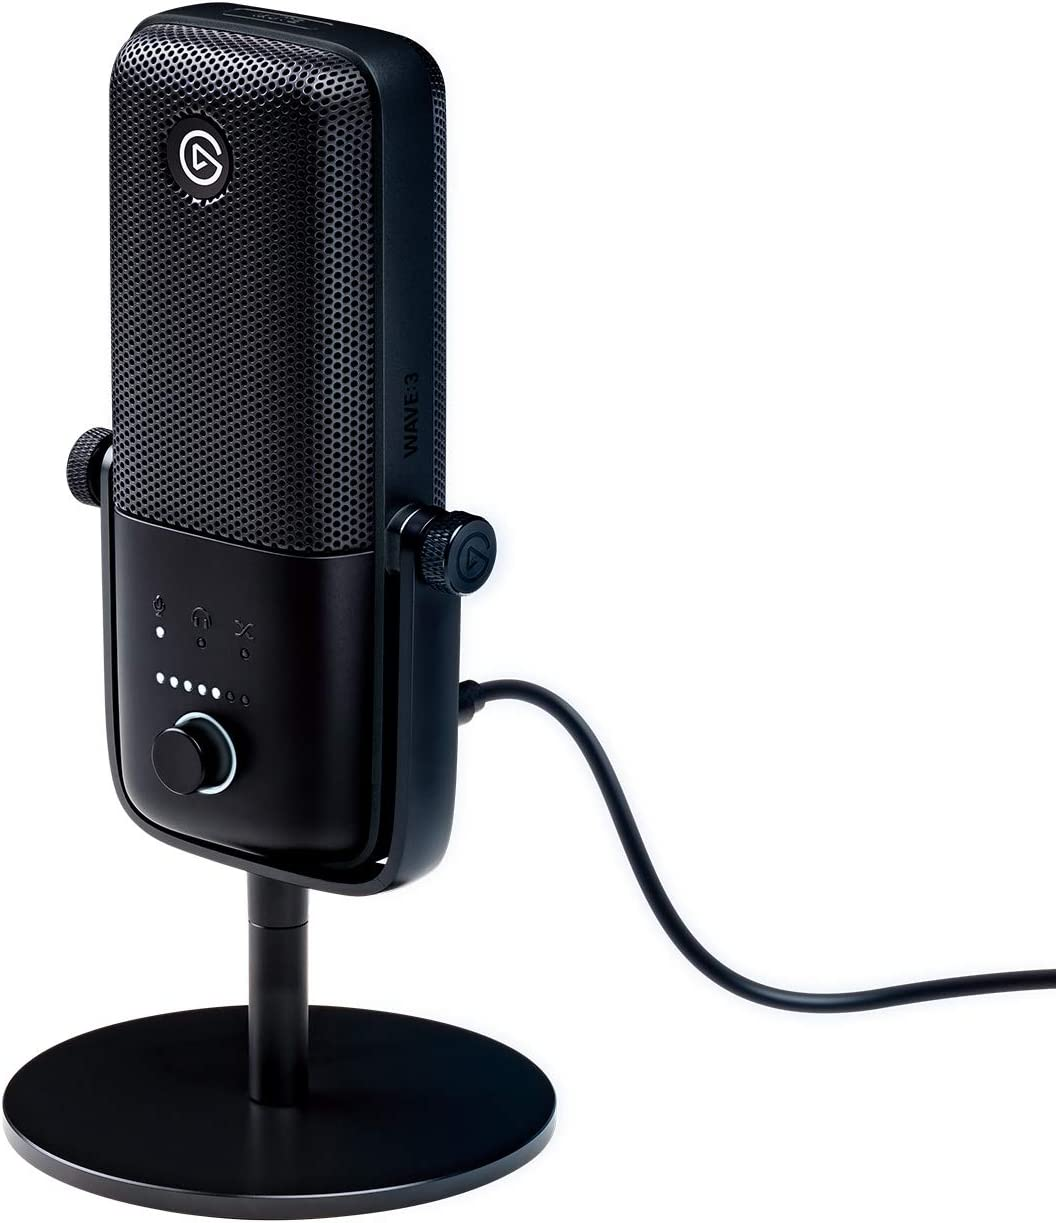 Elgato Wave:3 – USB Condenser Microphone and Digital Mixer for Streaming, Recording, Podcasting - Clipguard, Capacitive Mute, Plug & Play for PC/Mac